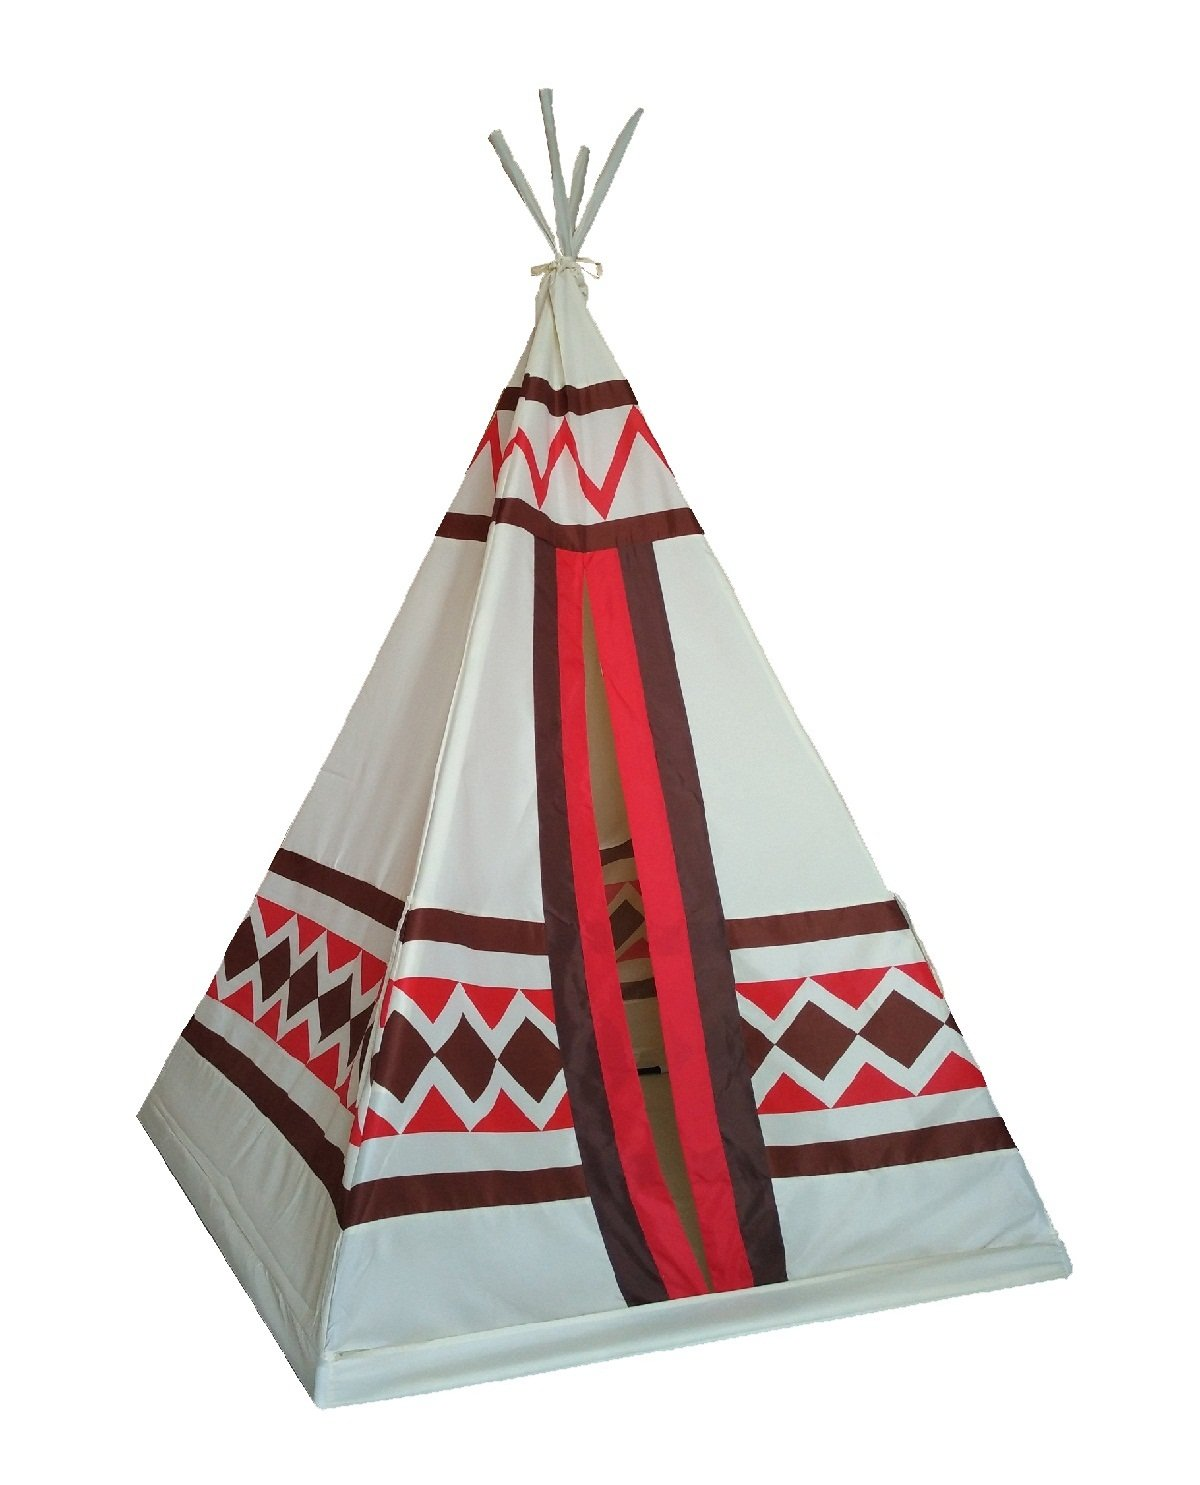 Design Teepee For Kids amazon com dream house portable indoor indian playhouse toy teepee for kids folding child tent toys games